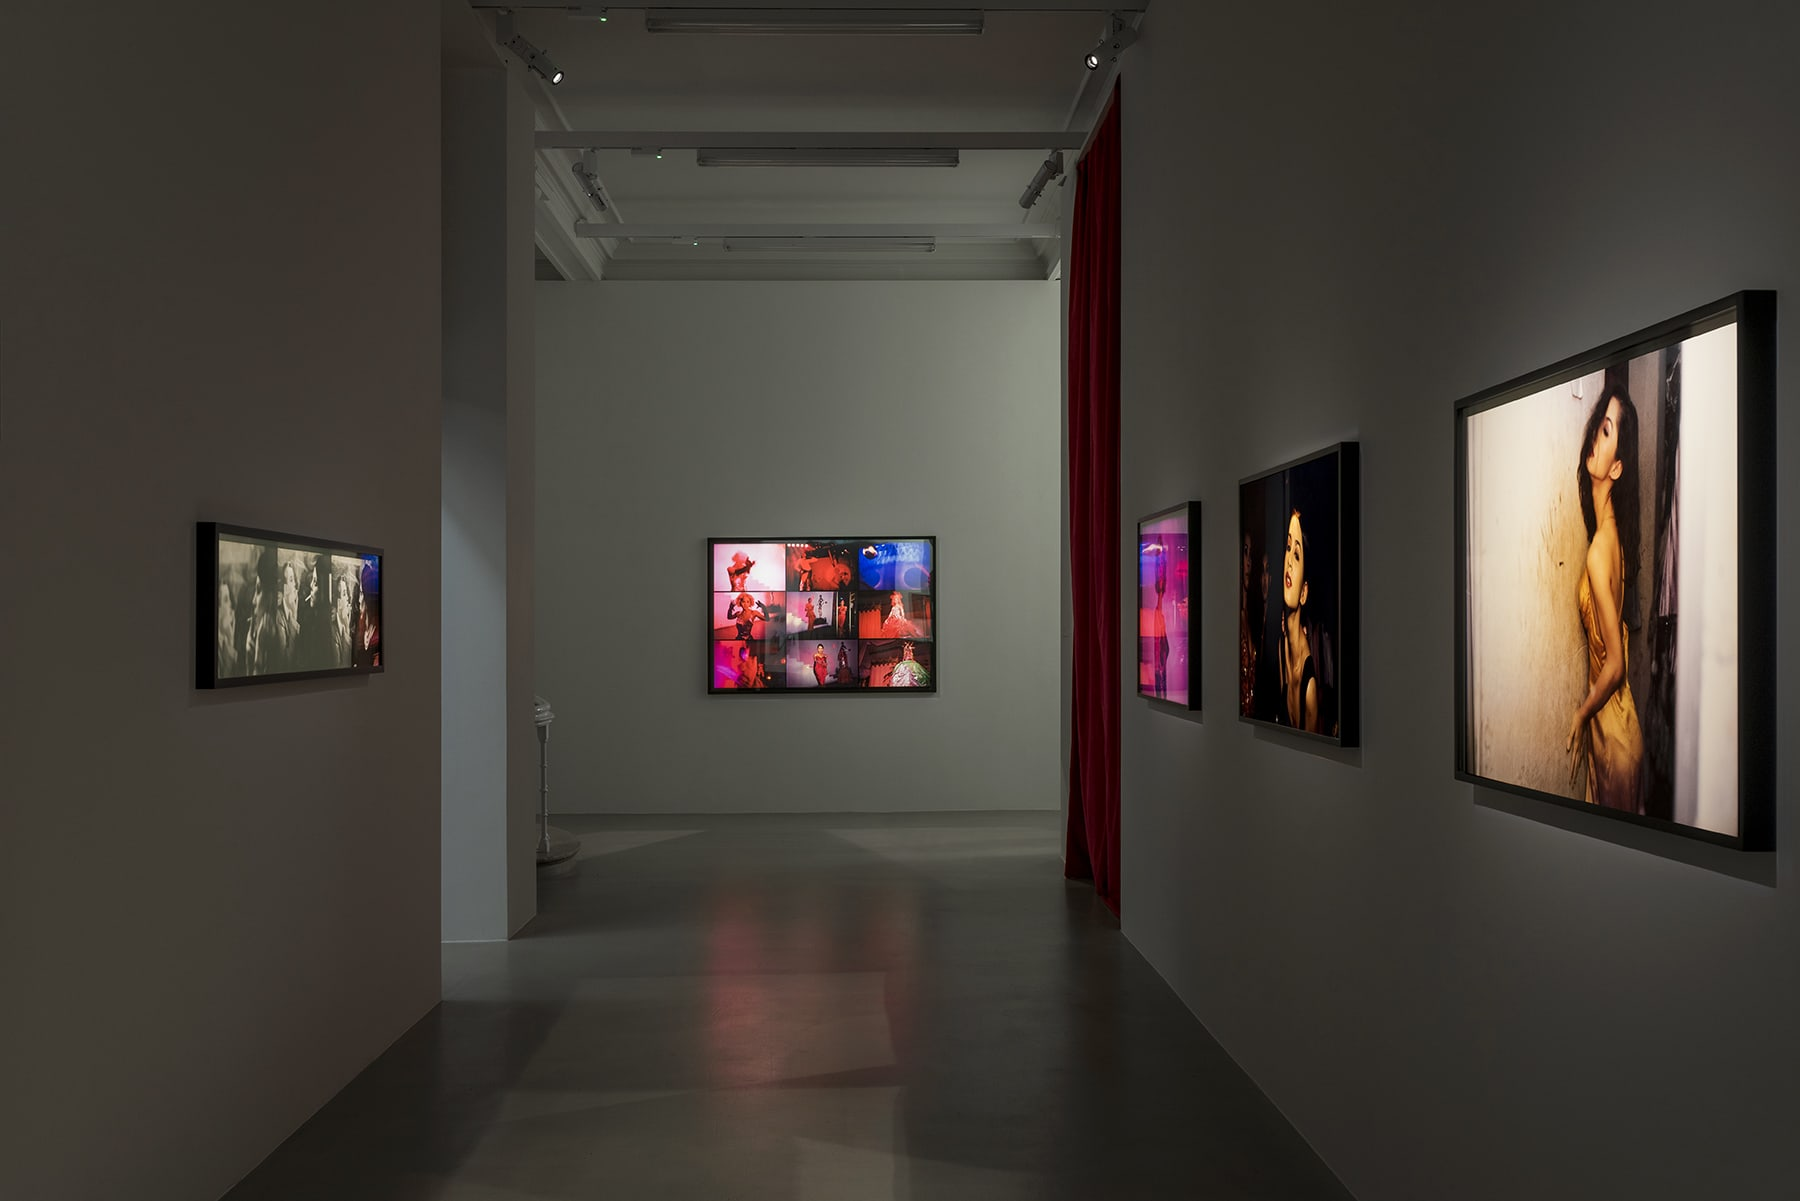 5 spotlit framed photographs on a grey wall with a red curtain leading to another room on the right.